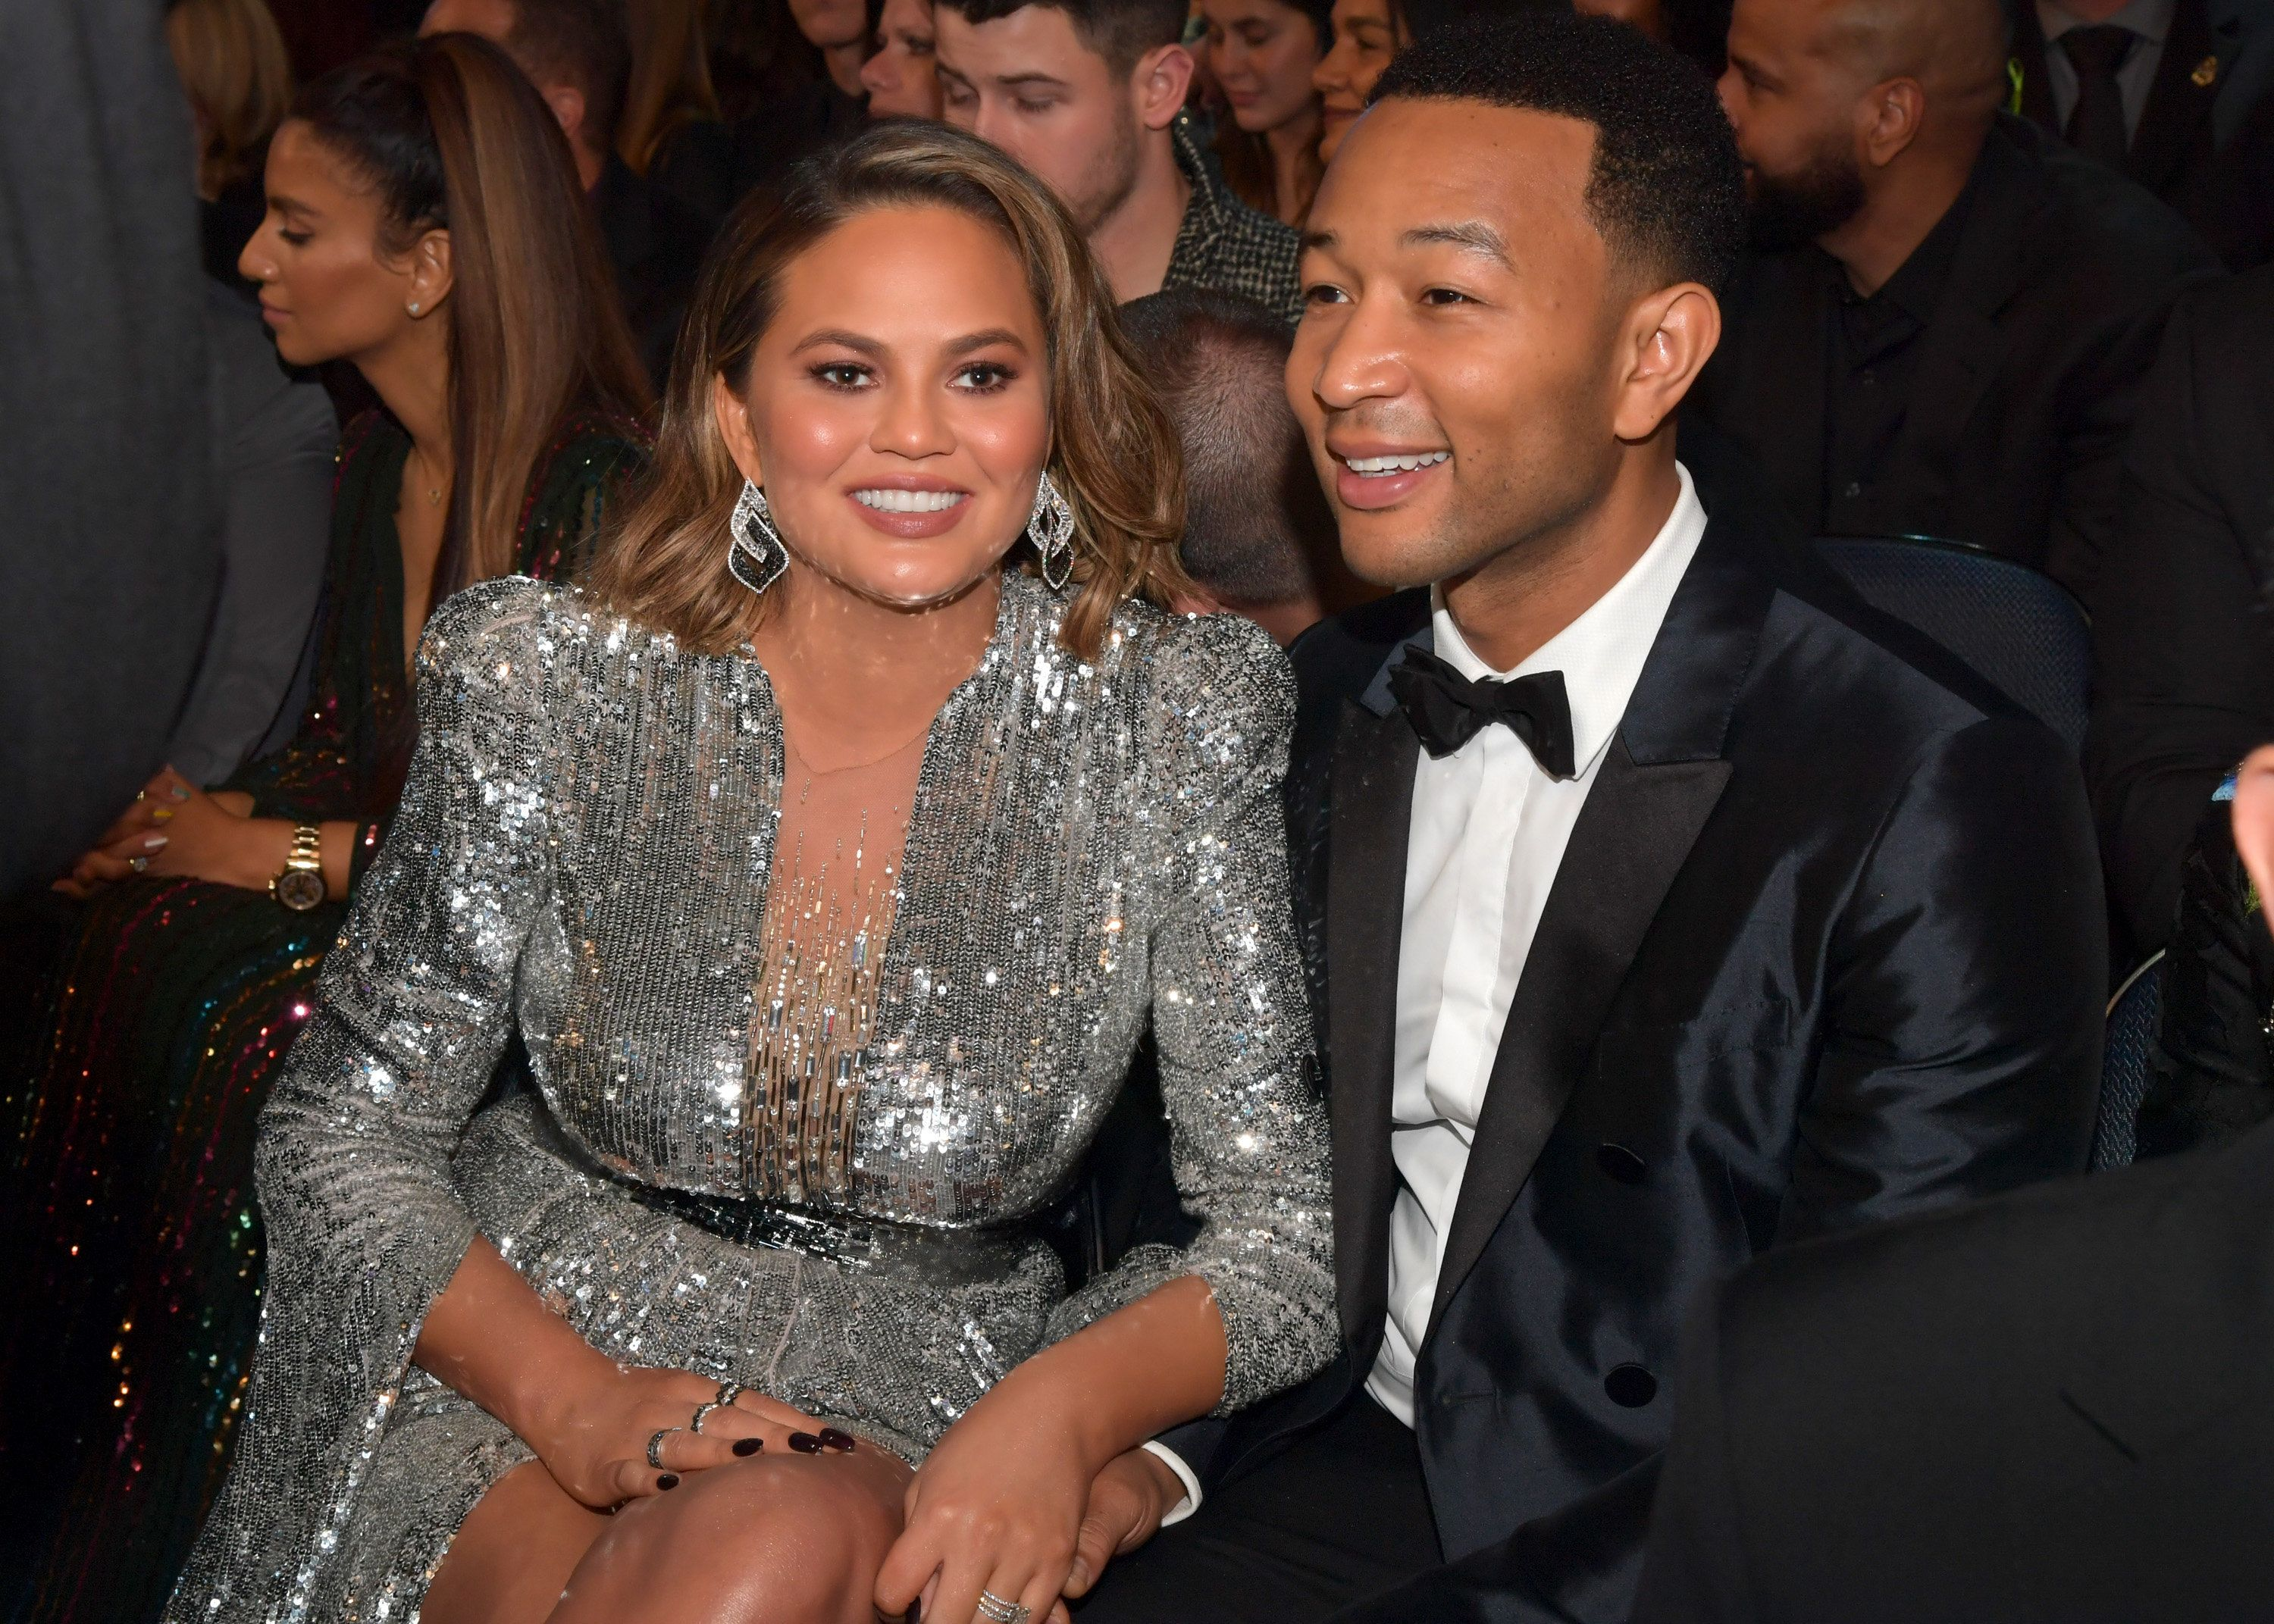 Chrissy Teigen And John Legend Revealed The Sex Of Their Baby After The